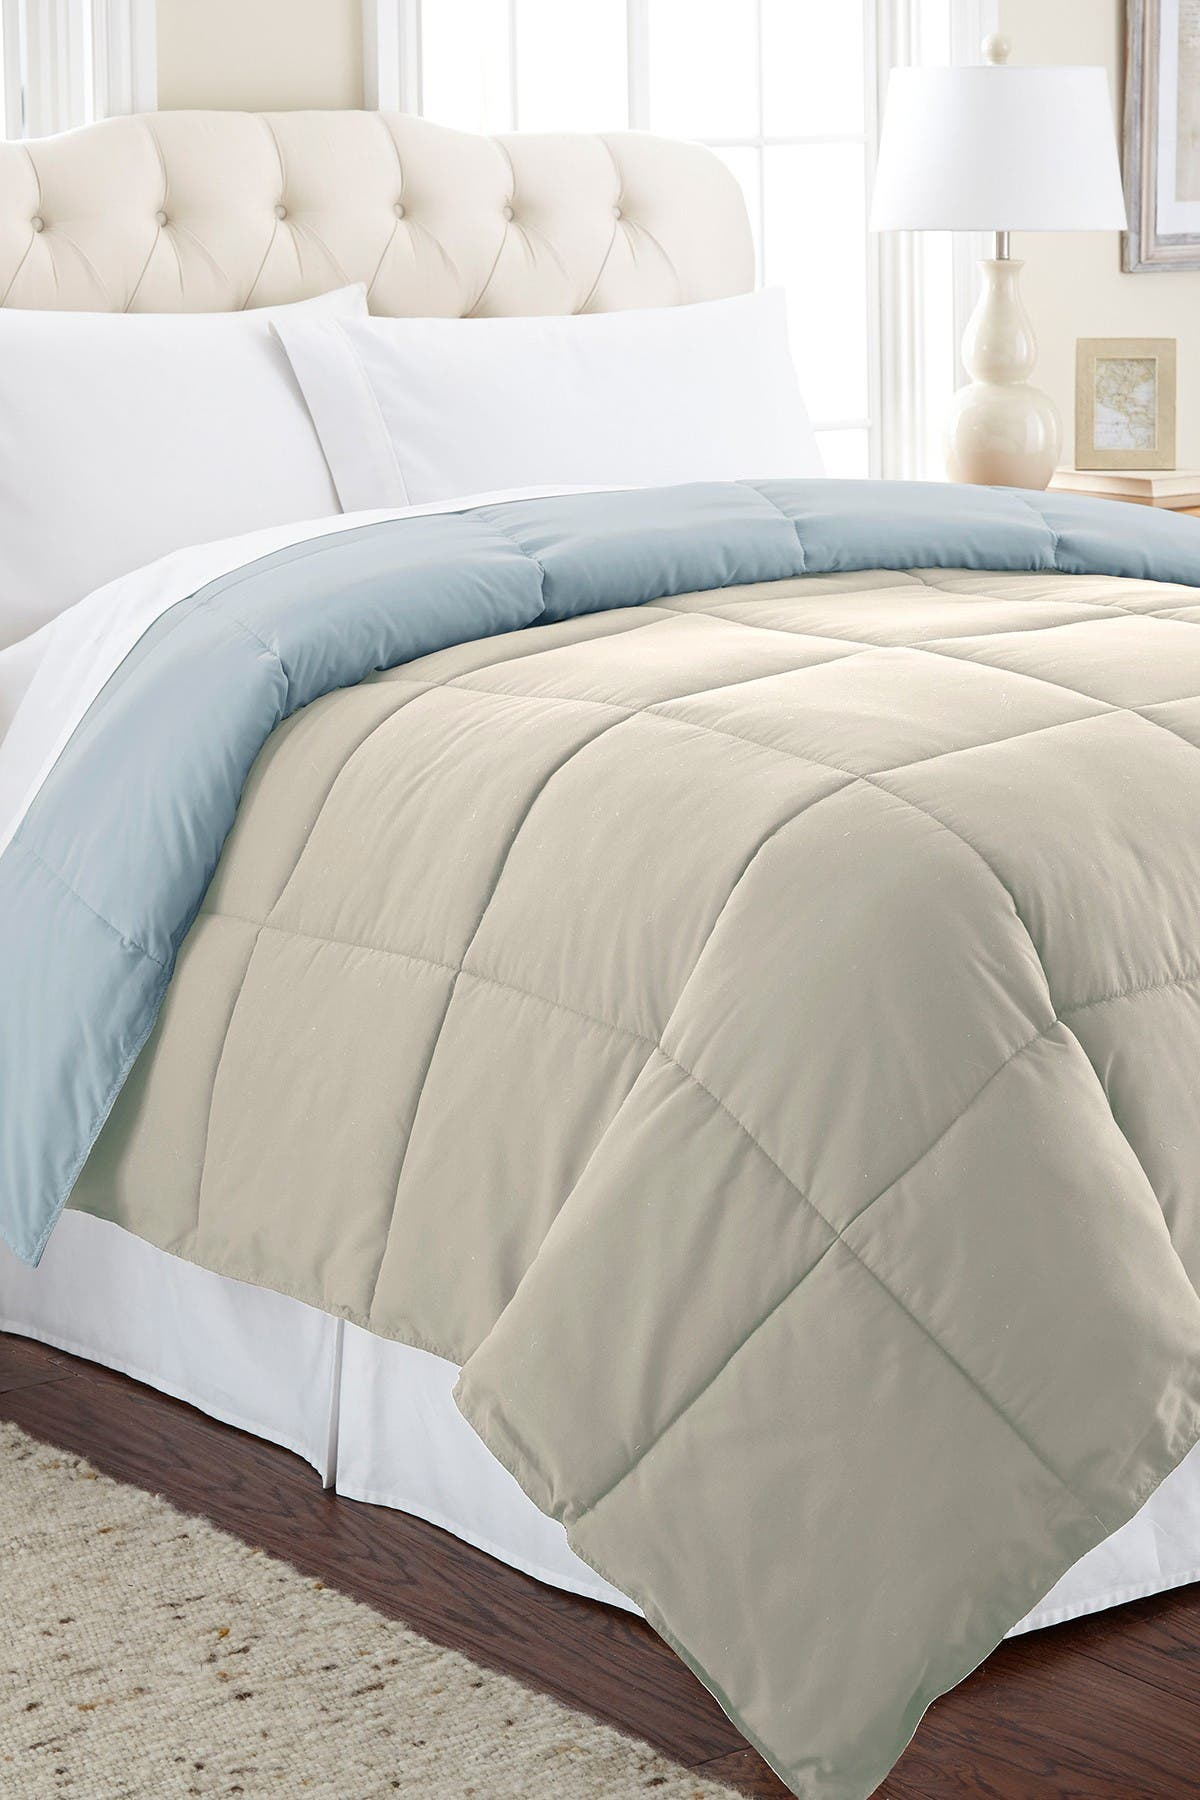 Image of Modern Threads Down Alternative Reversible Queen Comforter - Oatmeal/Dusty Blue